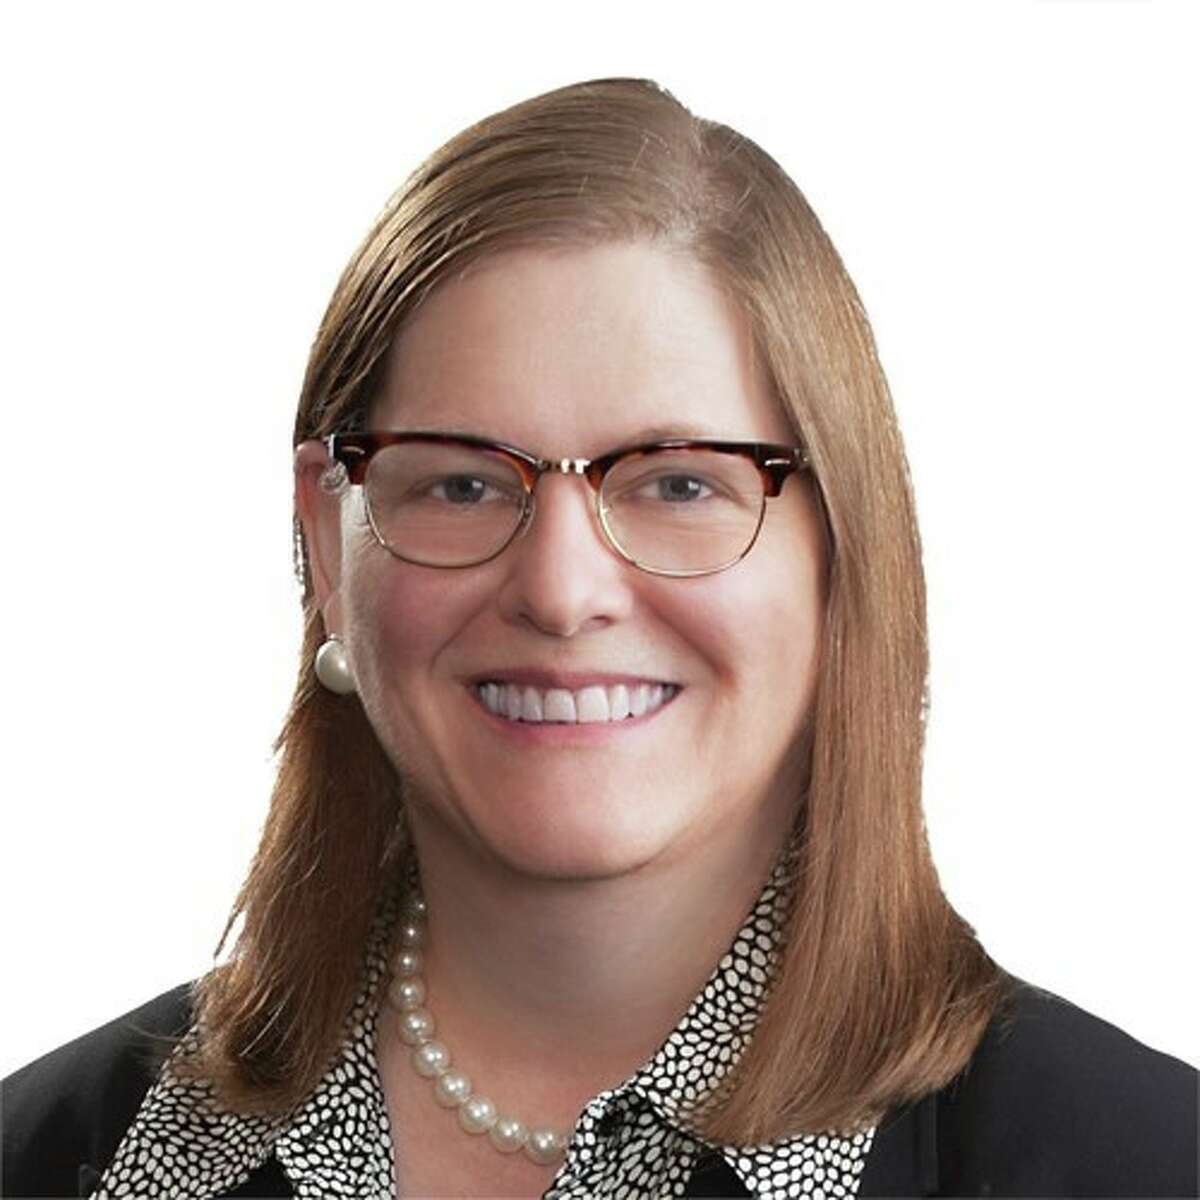 Teresa Lechner-Fish, IP Associate with Gardere Wynne Sewell, LLP, will speak to the Katy Bar Association on Jan. 24.